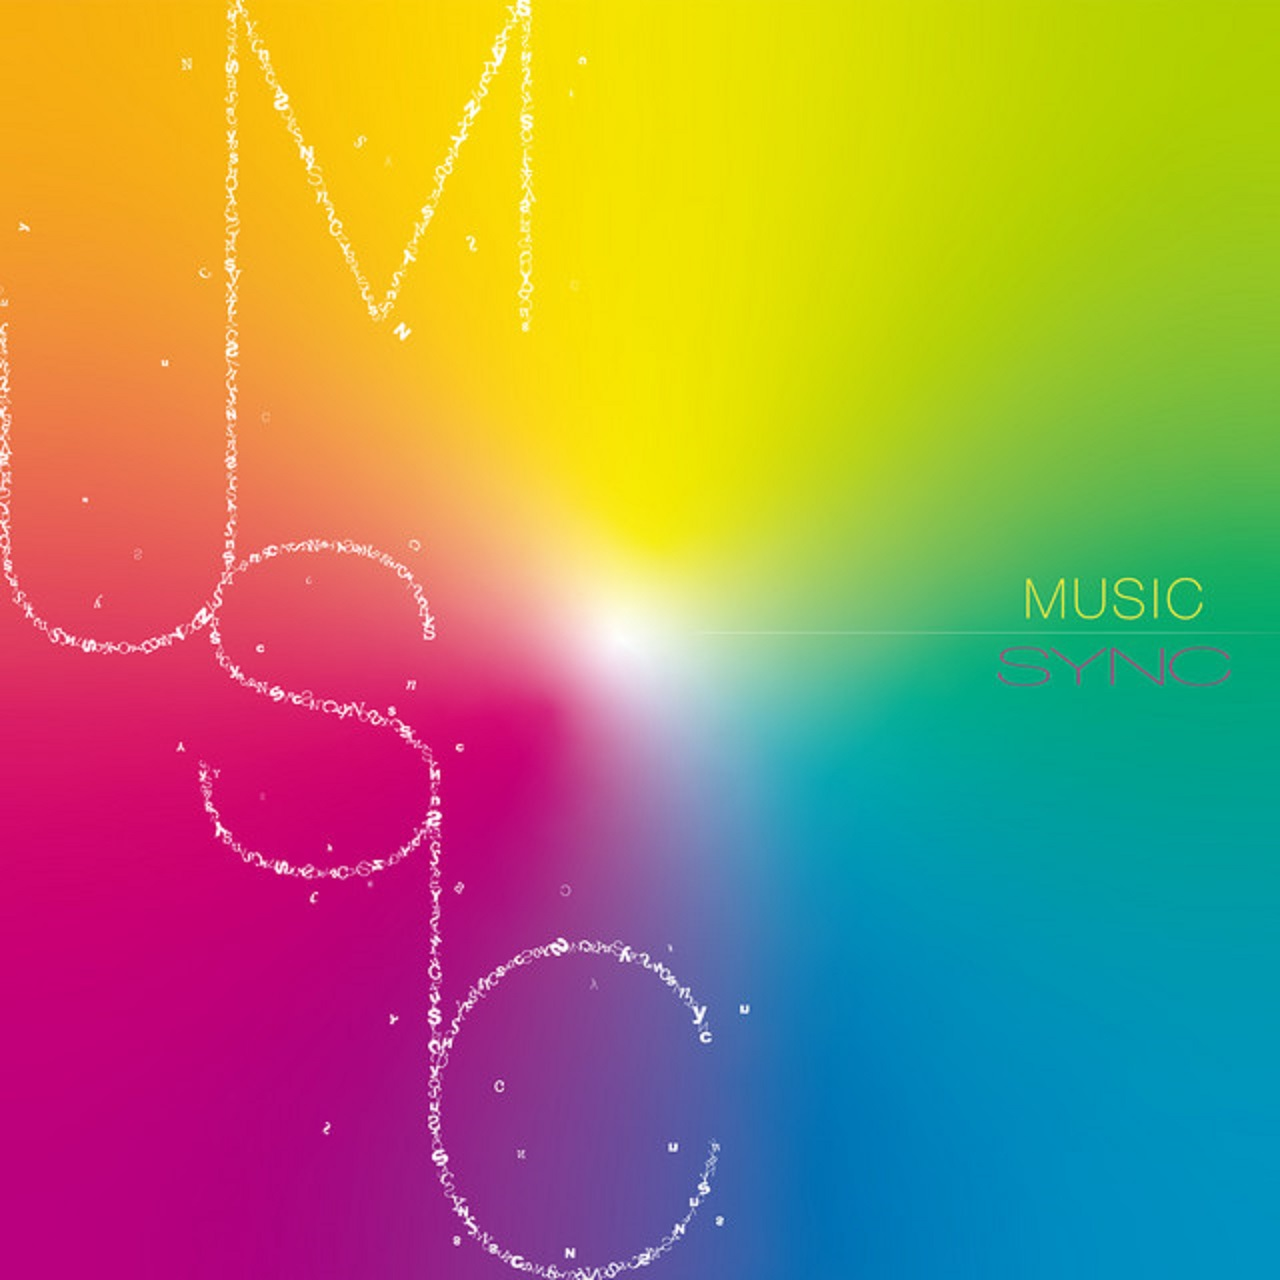 """Read more about the article The Daily Feature: Japanese Electropop Band SYNC Builds A Colorful World With """"Music"""""""